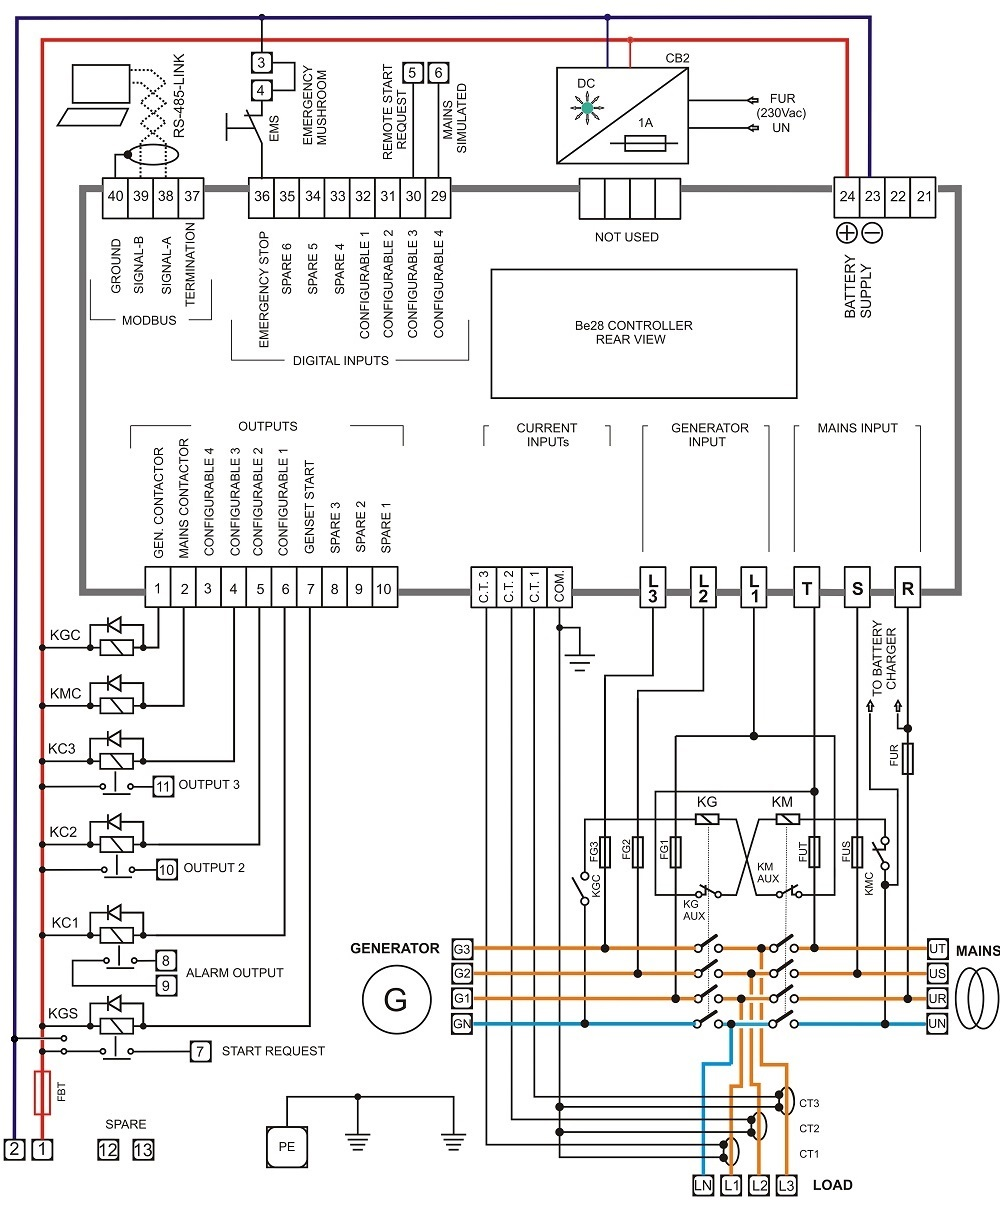 how to wire a generator transfer switch diagram wiring position est smoke detector schematic ats panel generators library generac 60kva